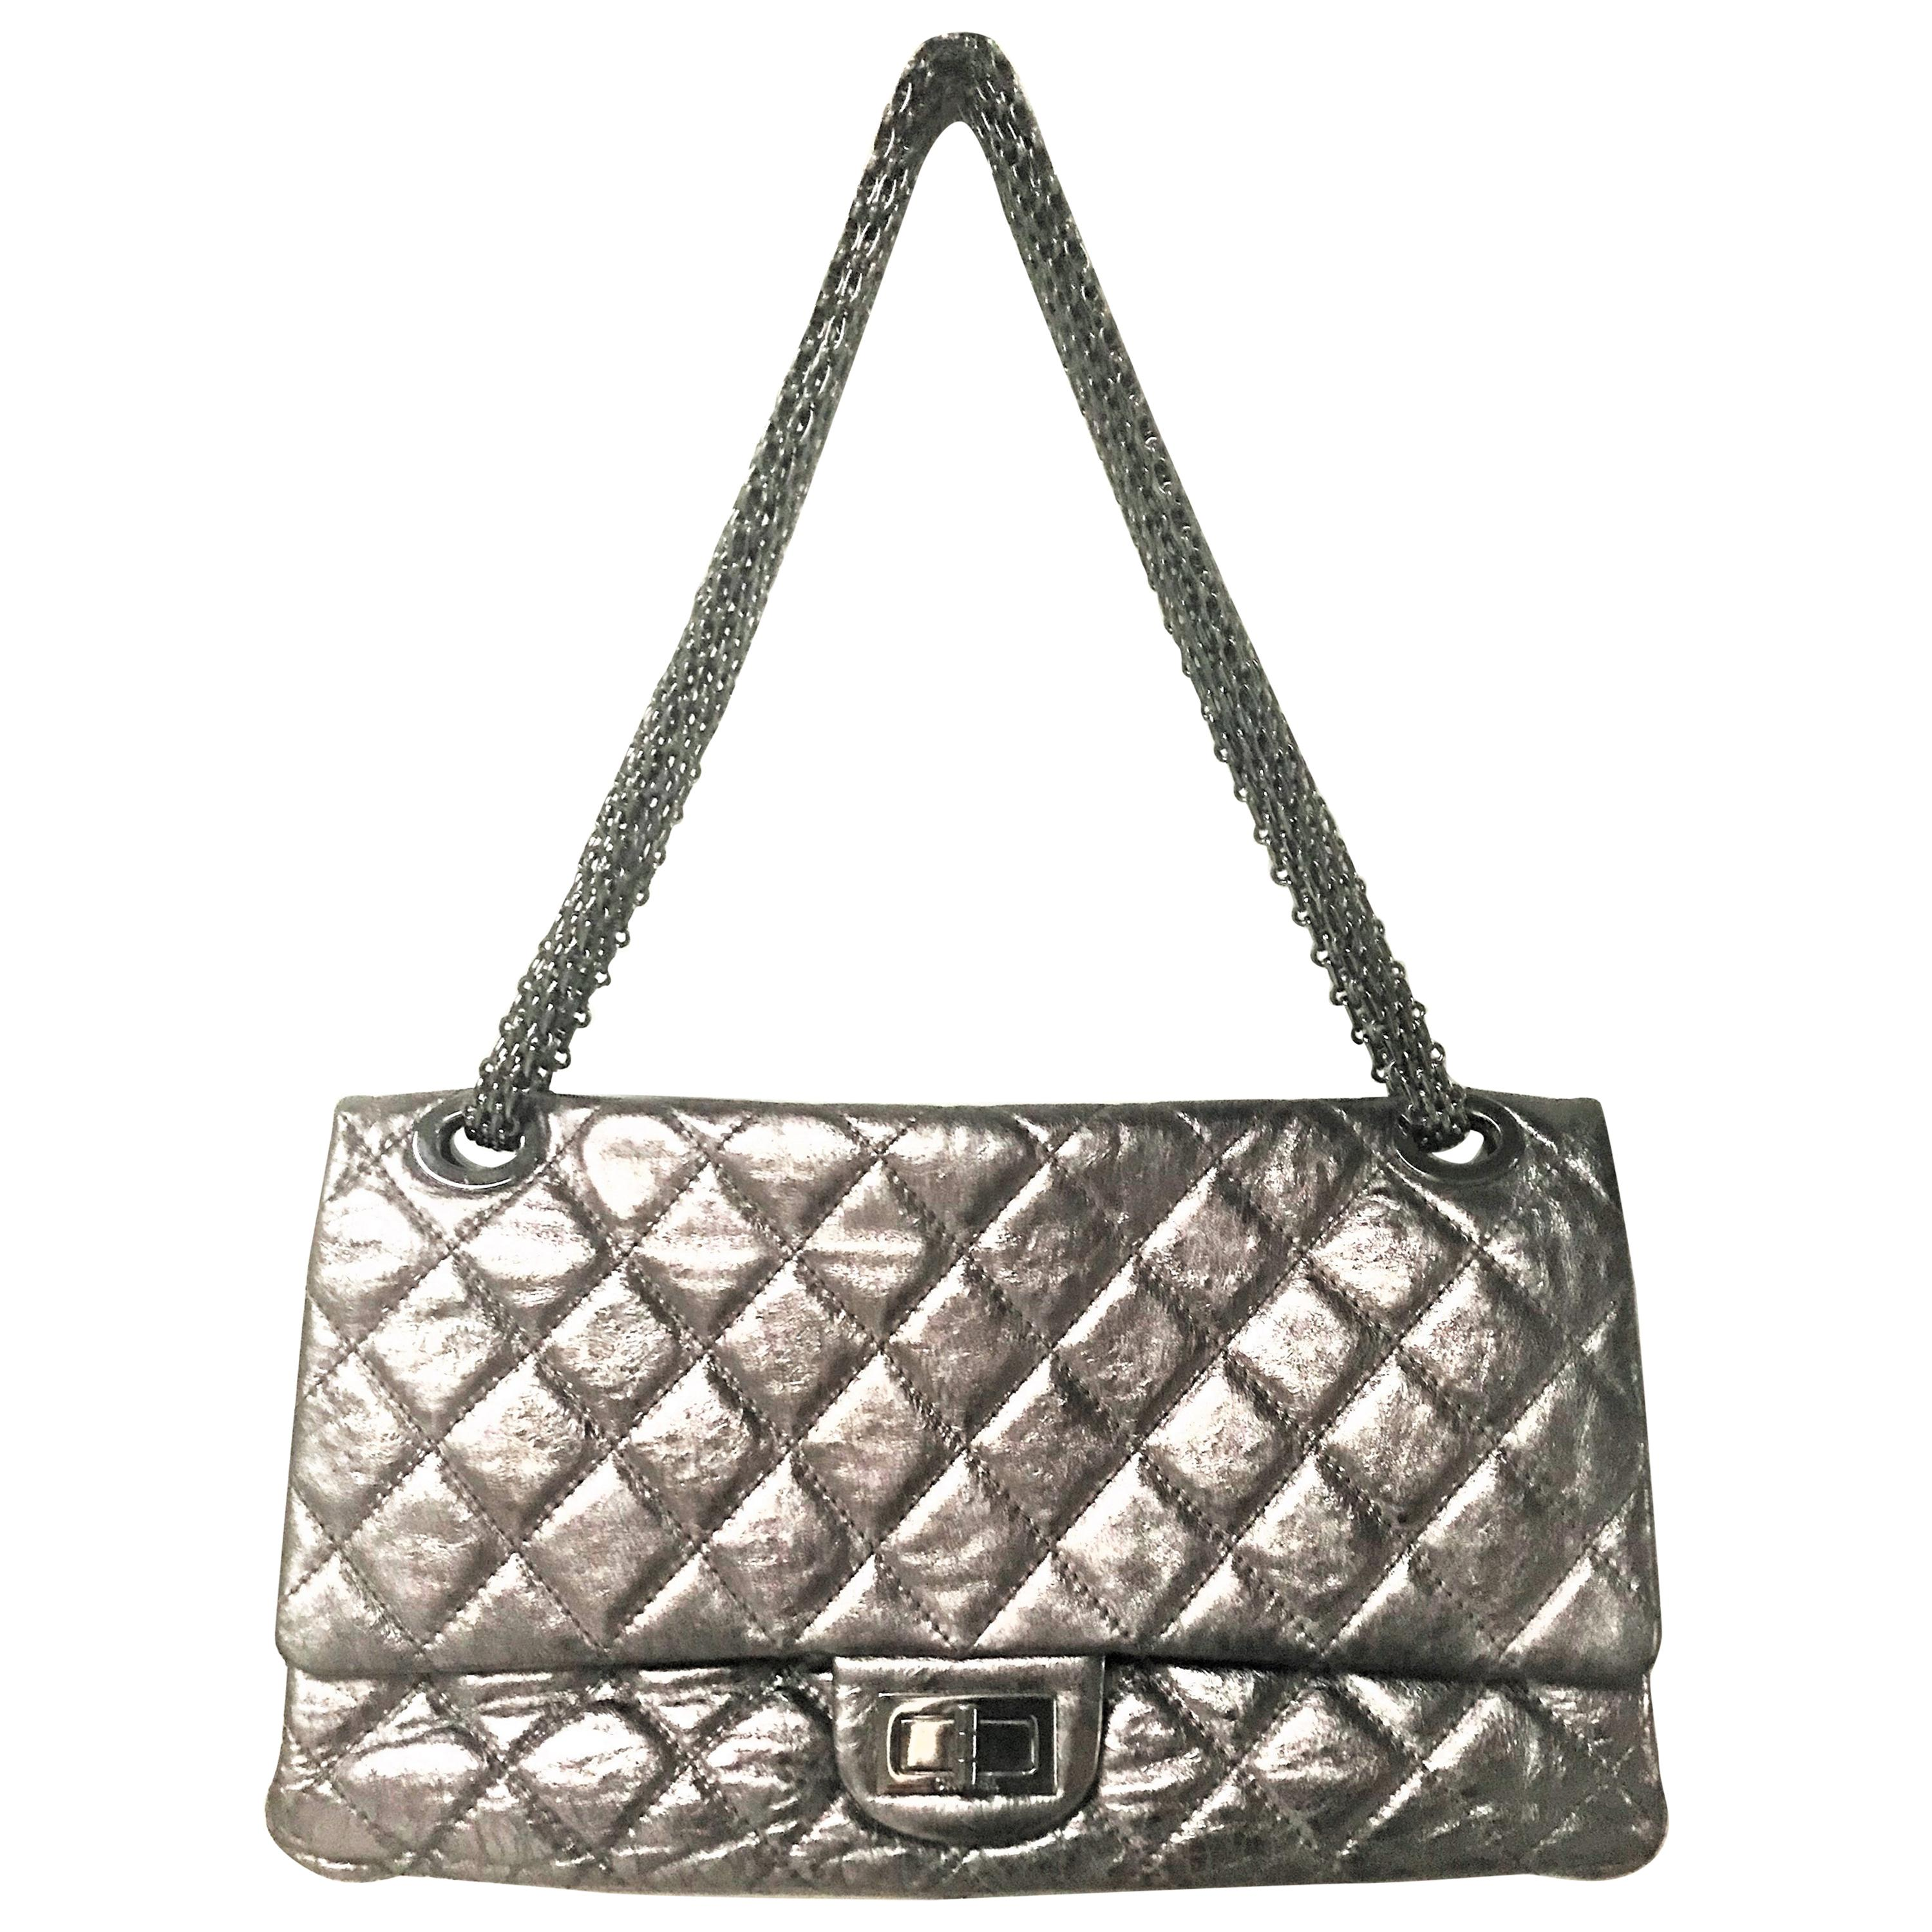 Chanel Cruis Collection maxi double flap bag silver distressed leather